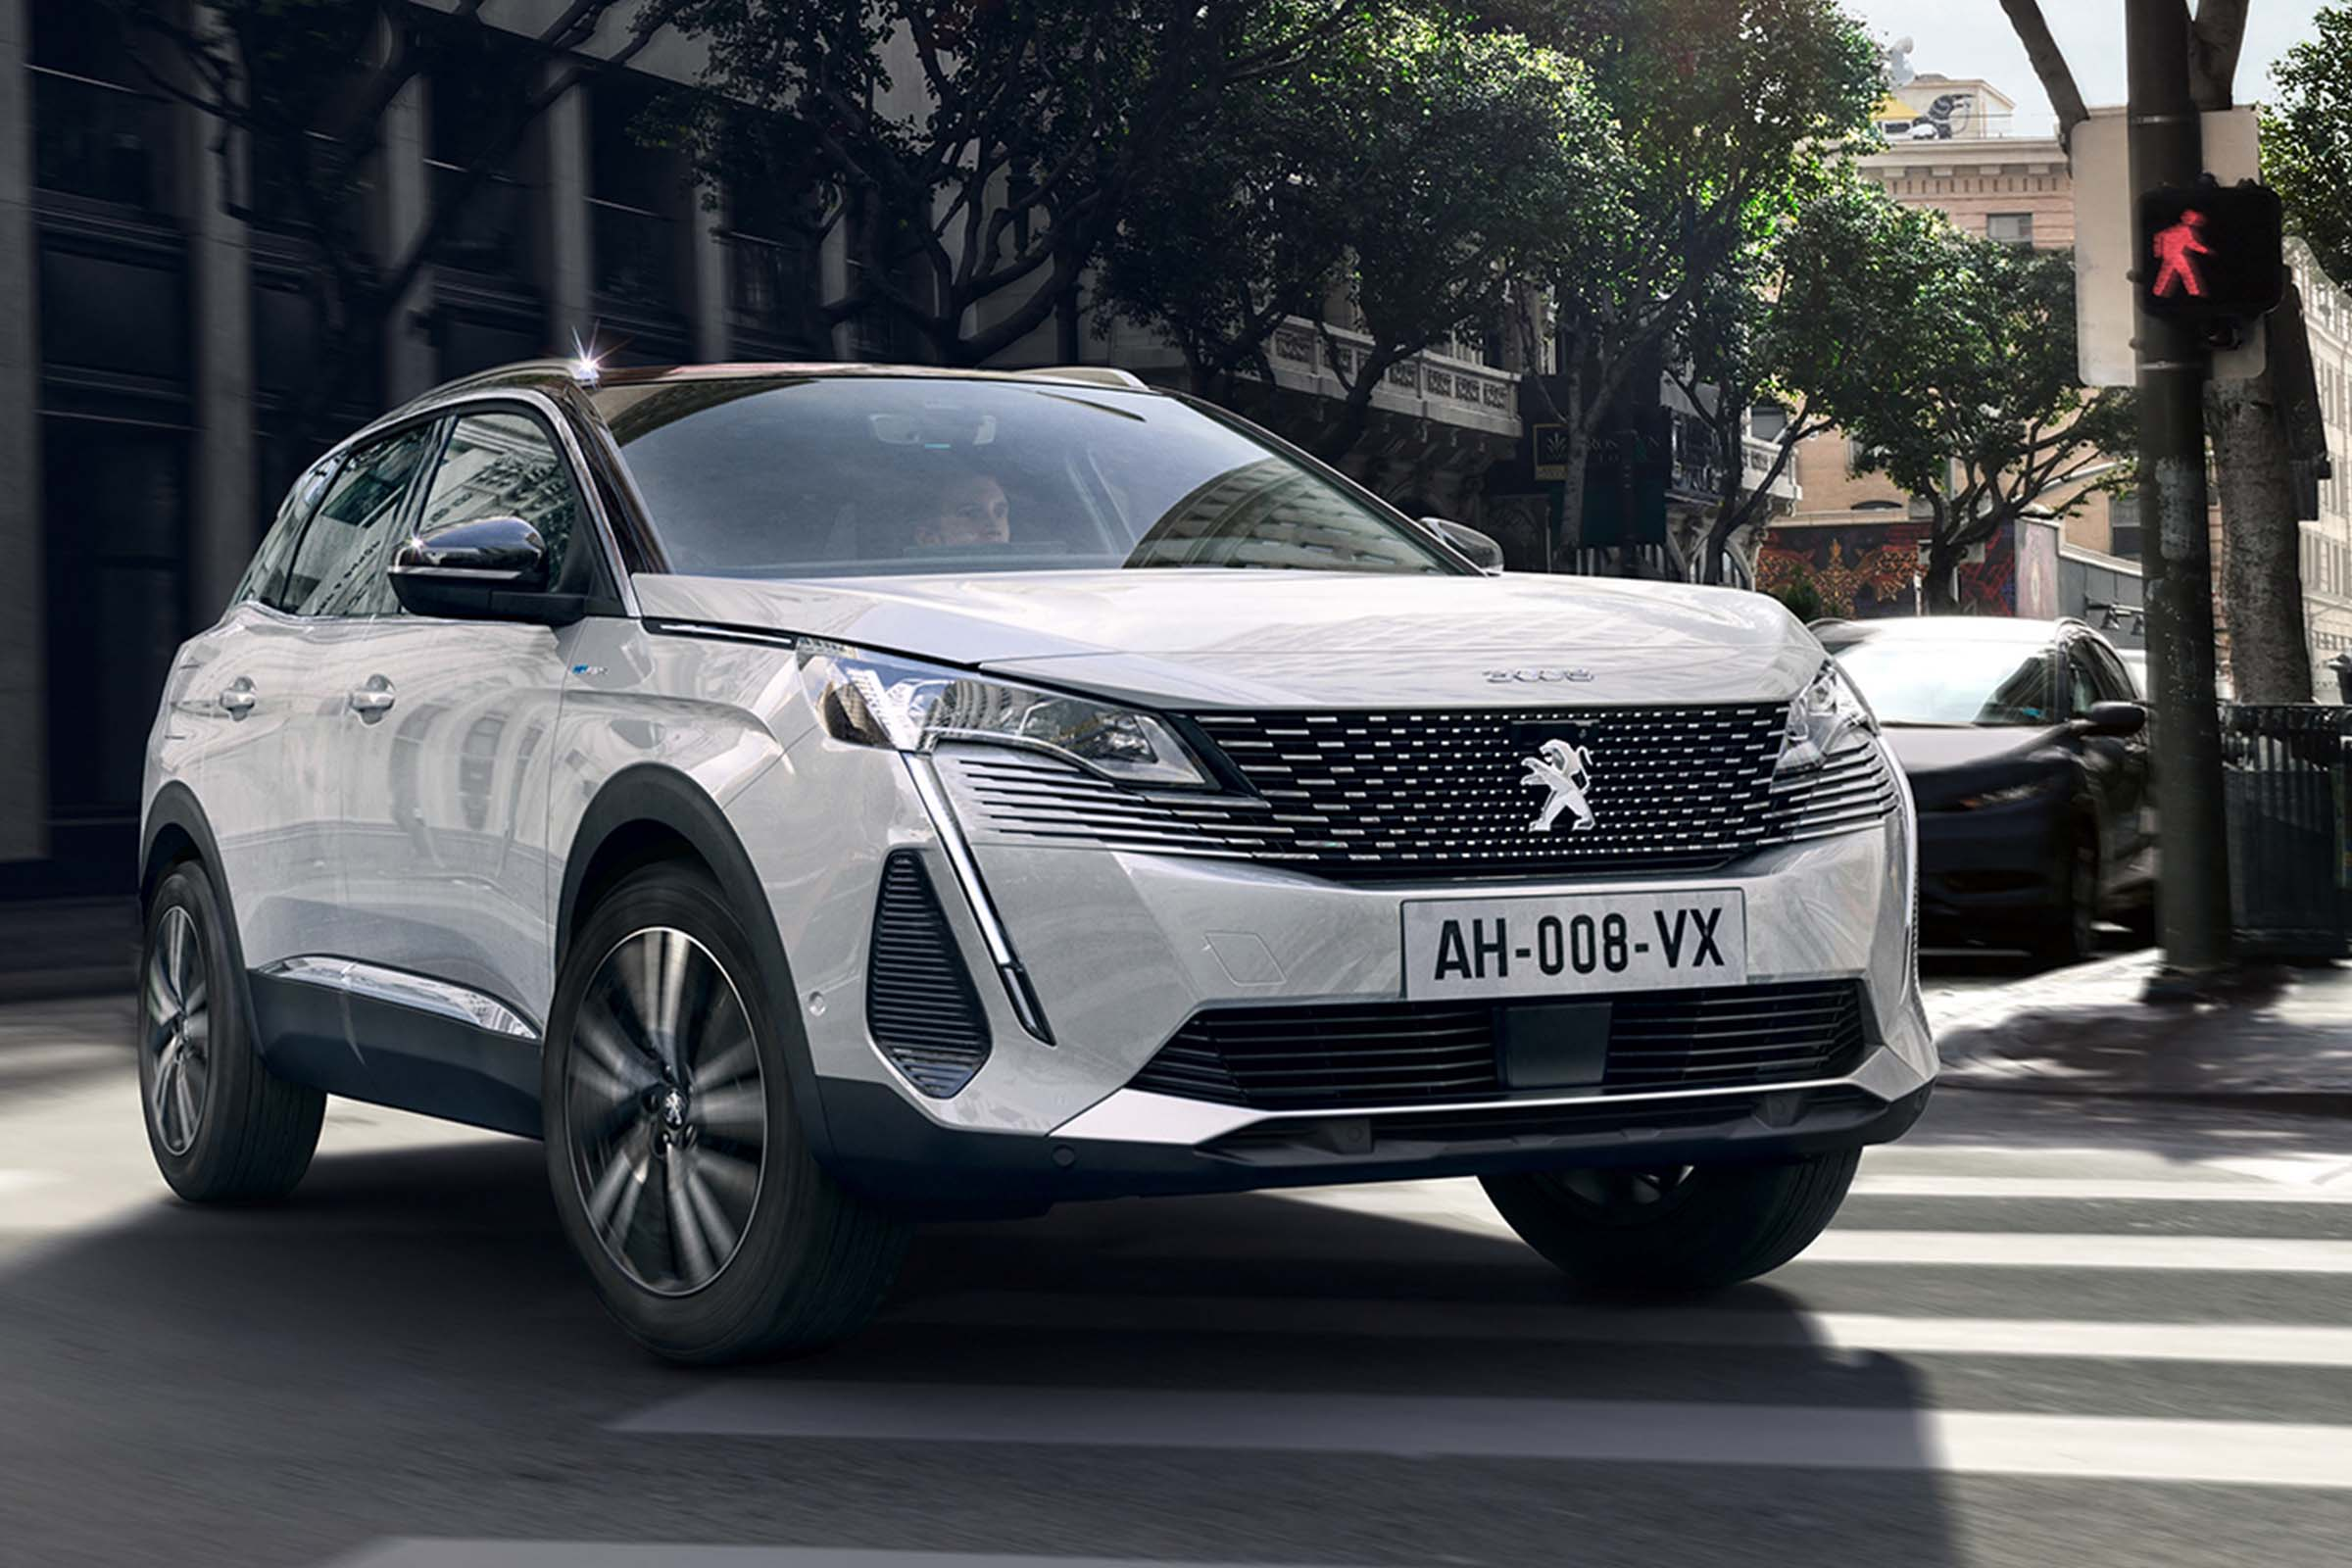 New Peugeot 3008 hybrid SUV: UK prices and specs confirmed   DrivingElectric